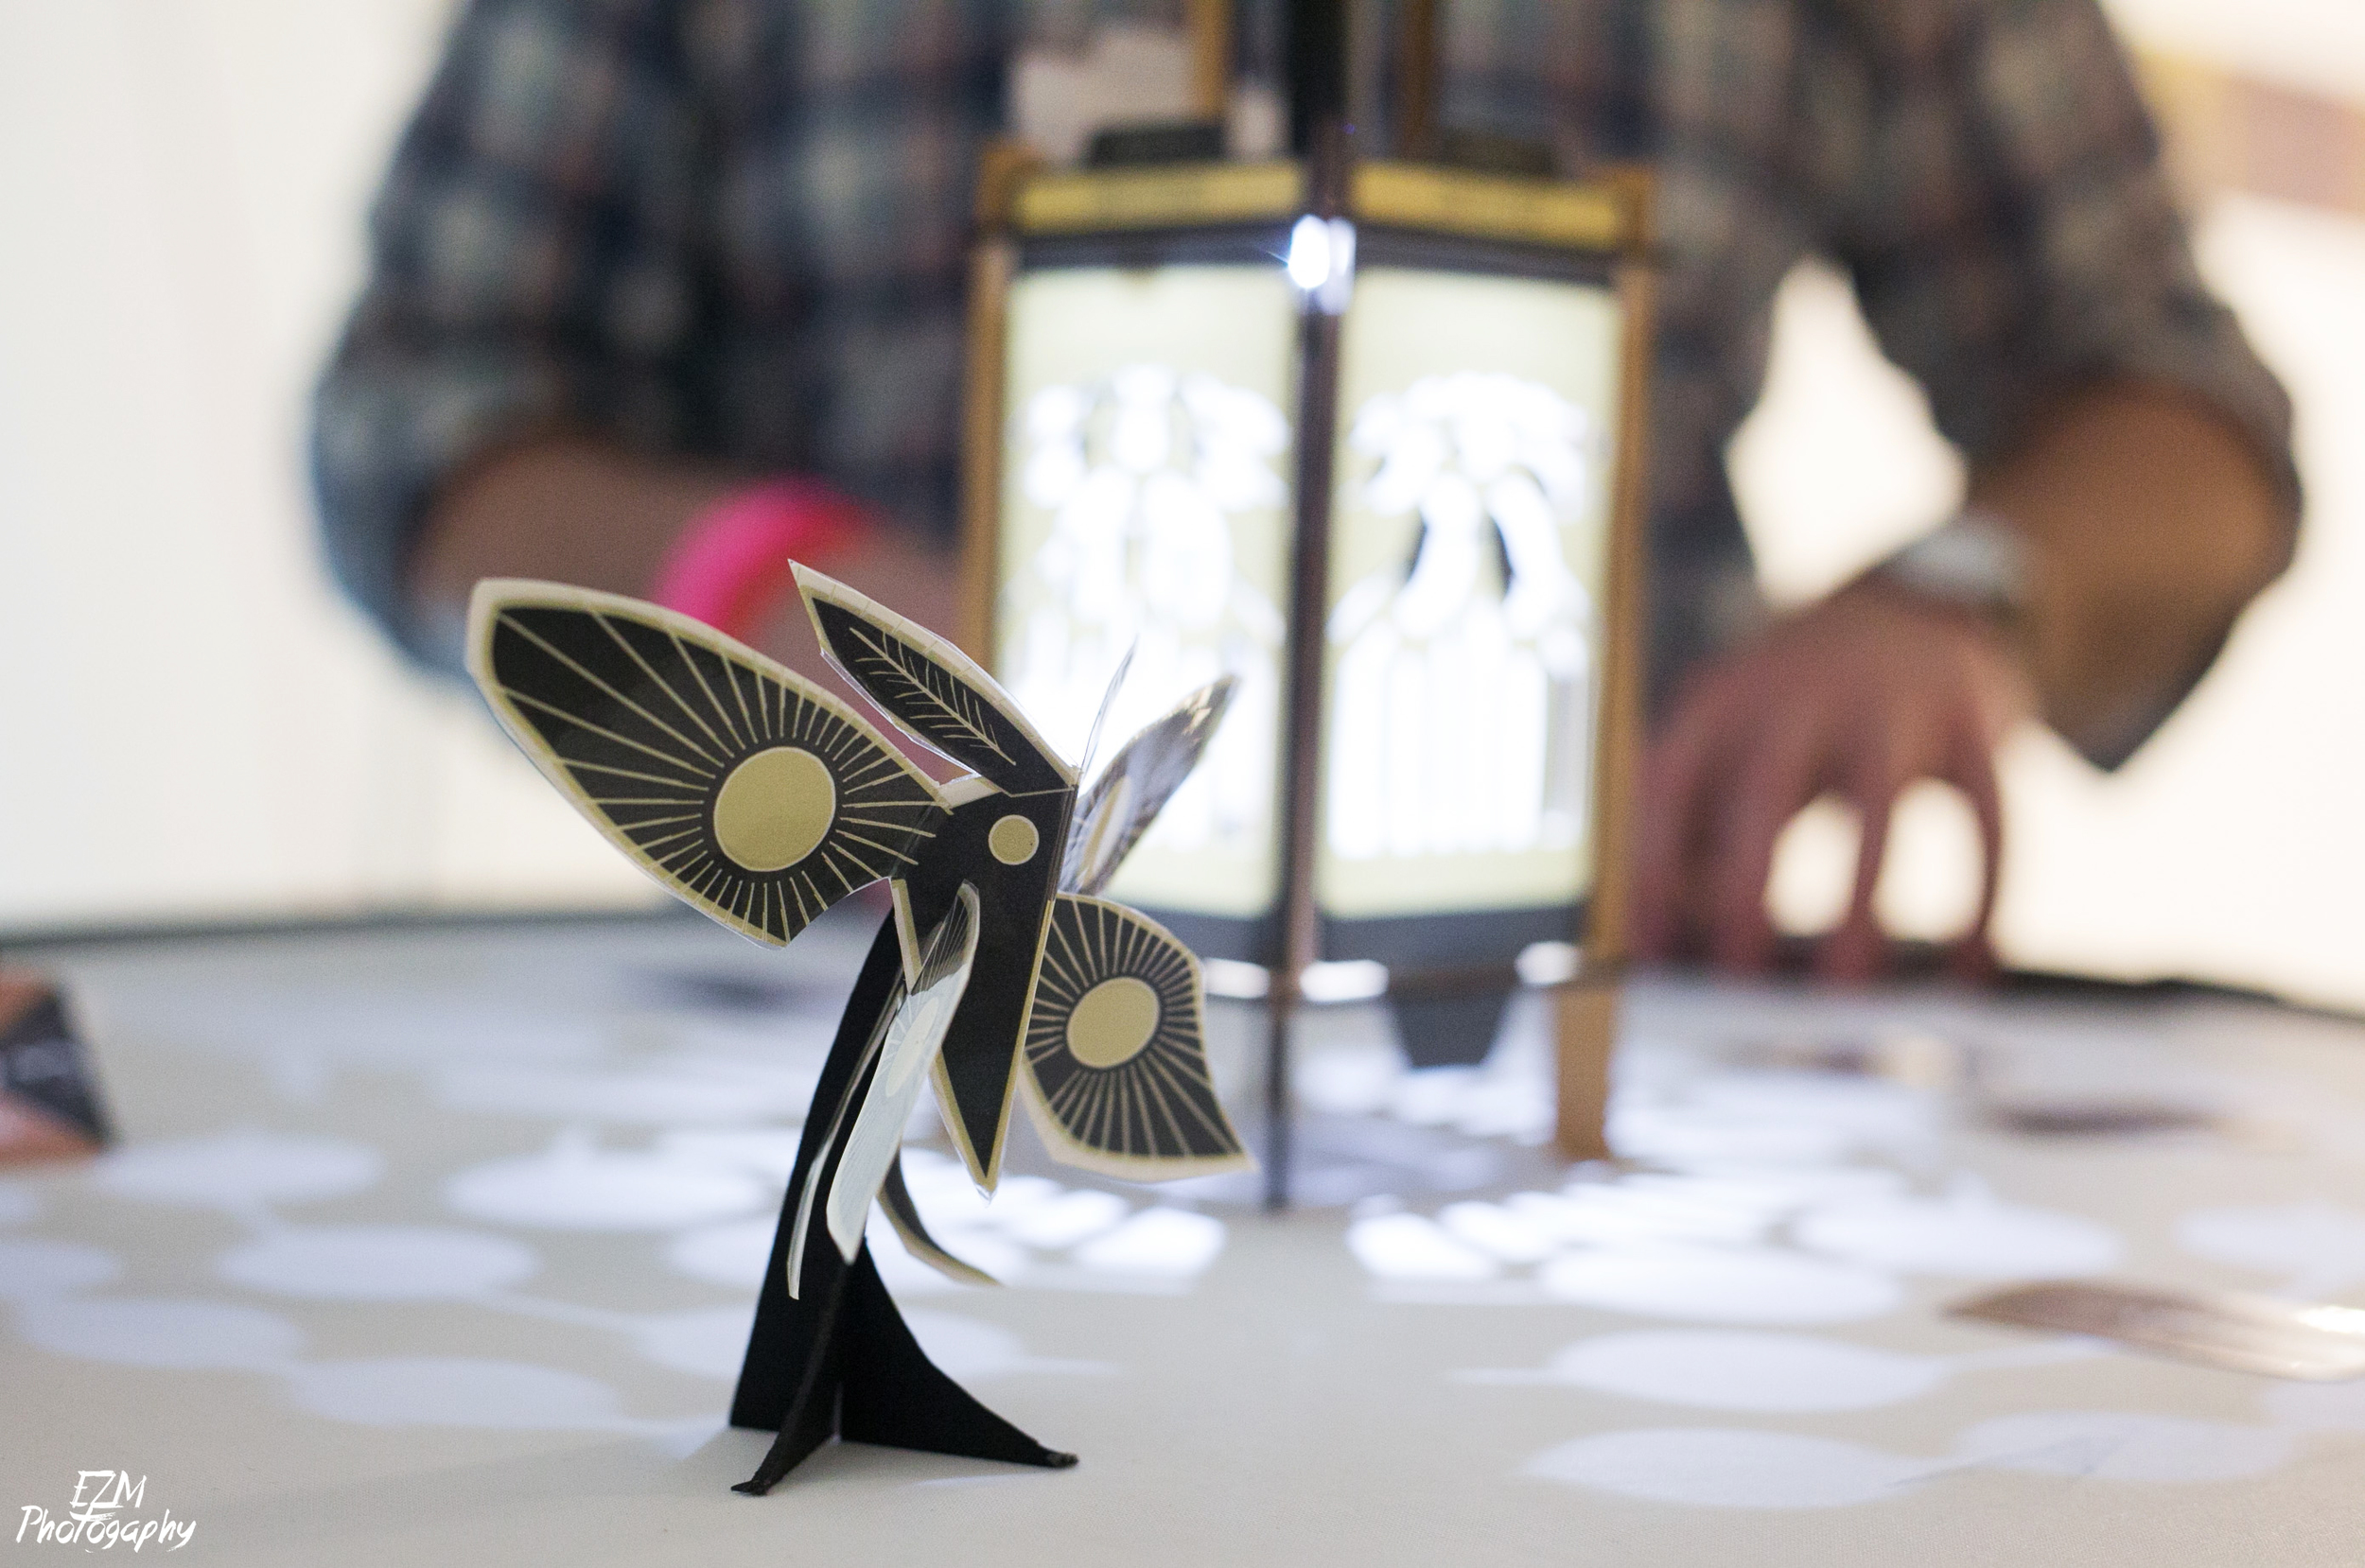 The Synx is the first game built for the Larklamp Lantern